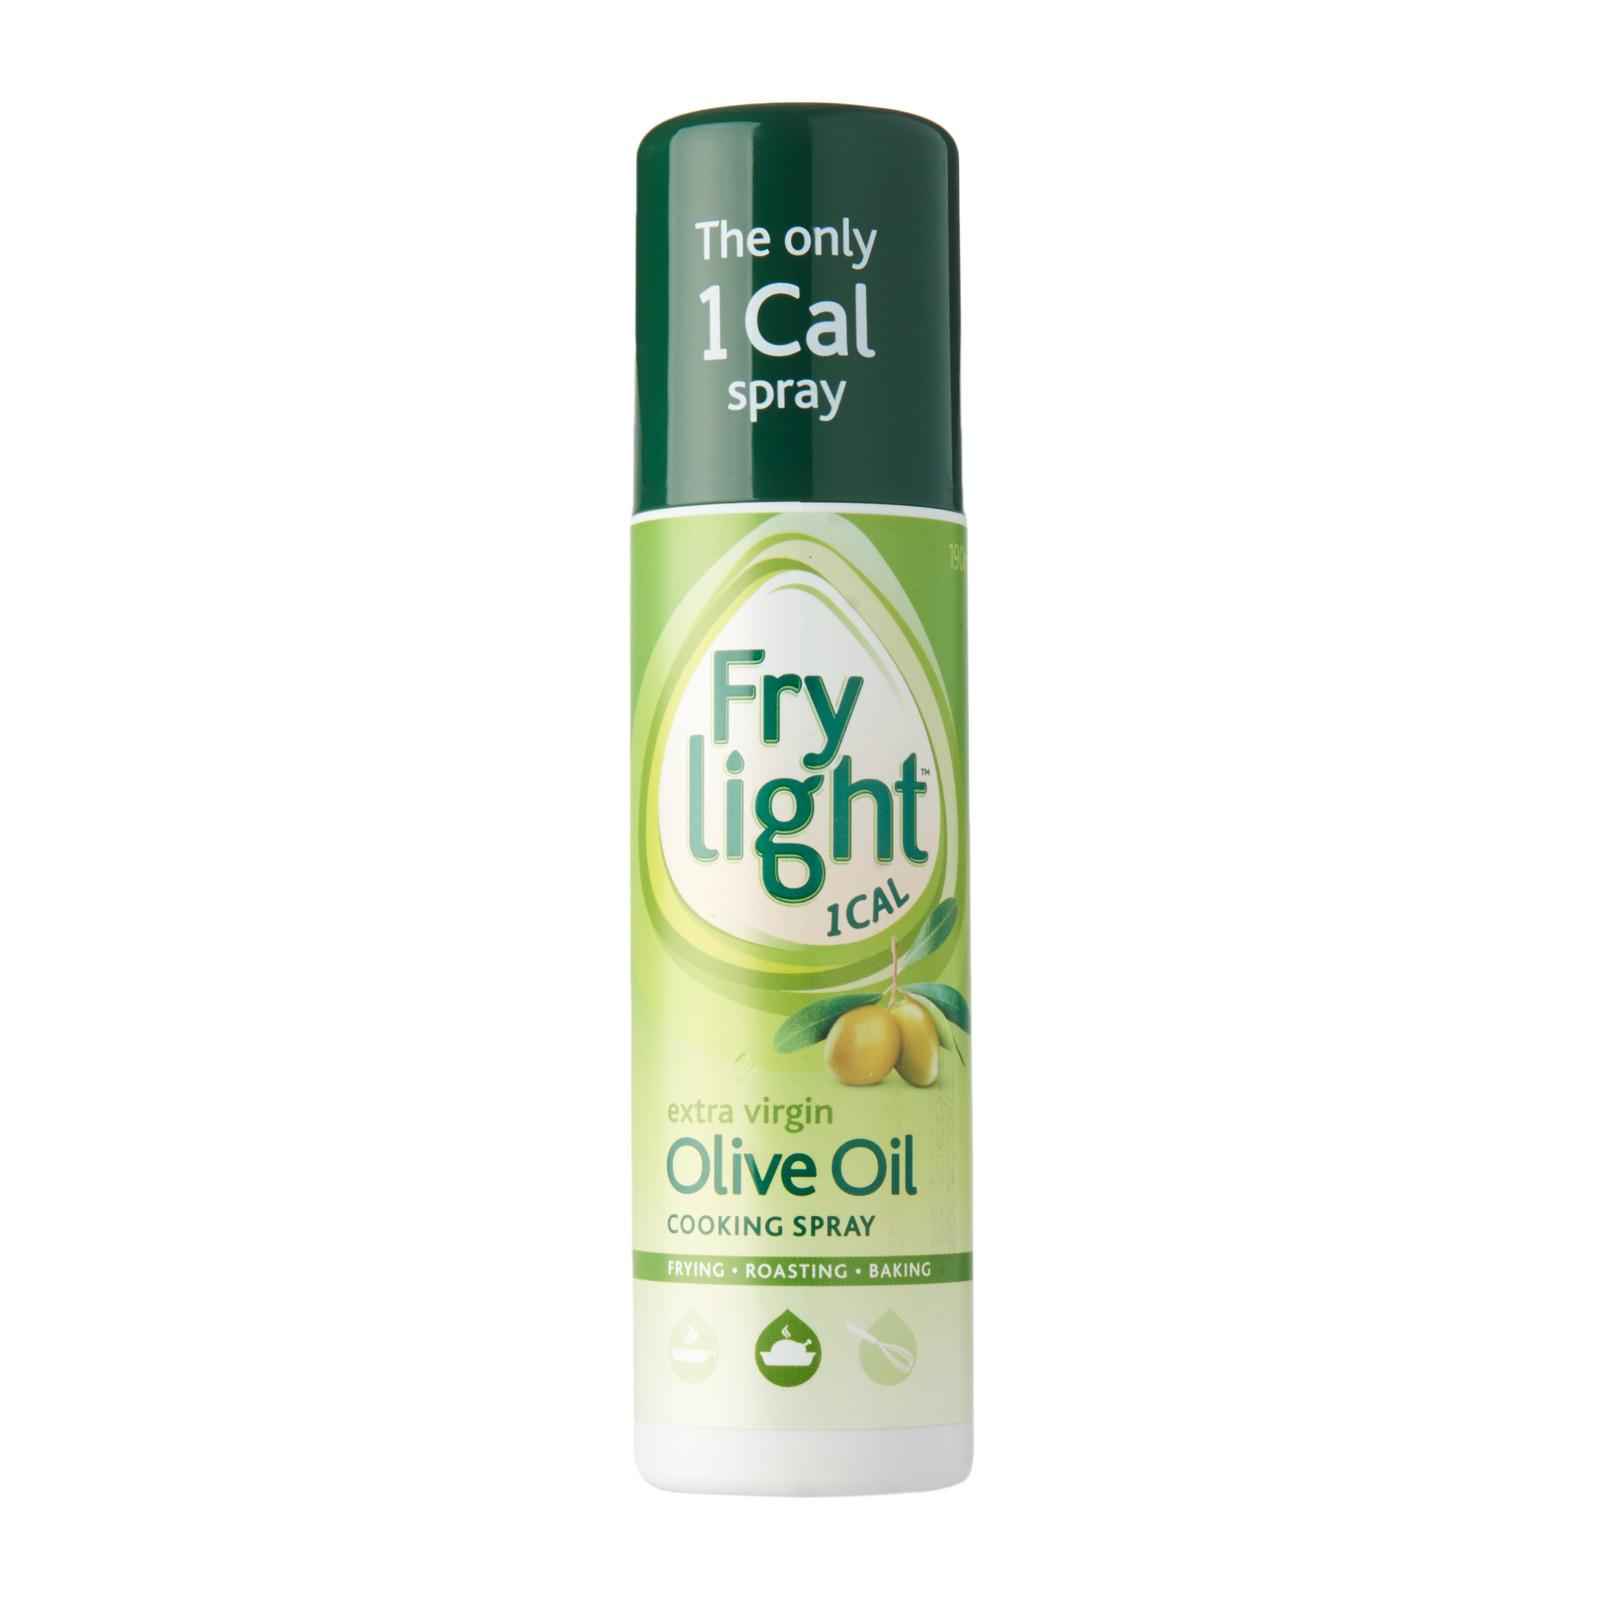 Fry Light 1 Cal Extra Virgin Olive Oil Cooking Spray